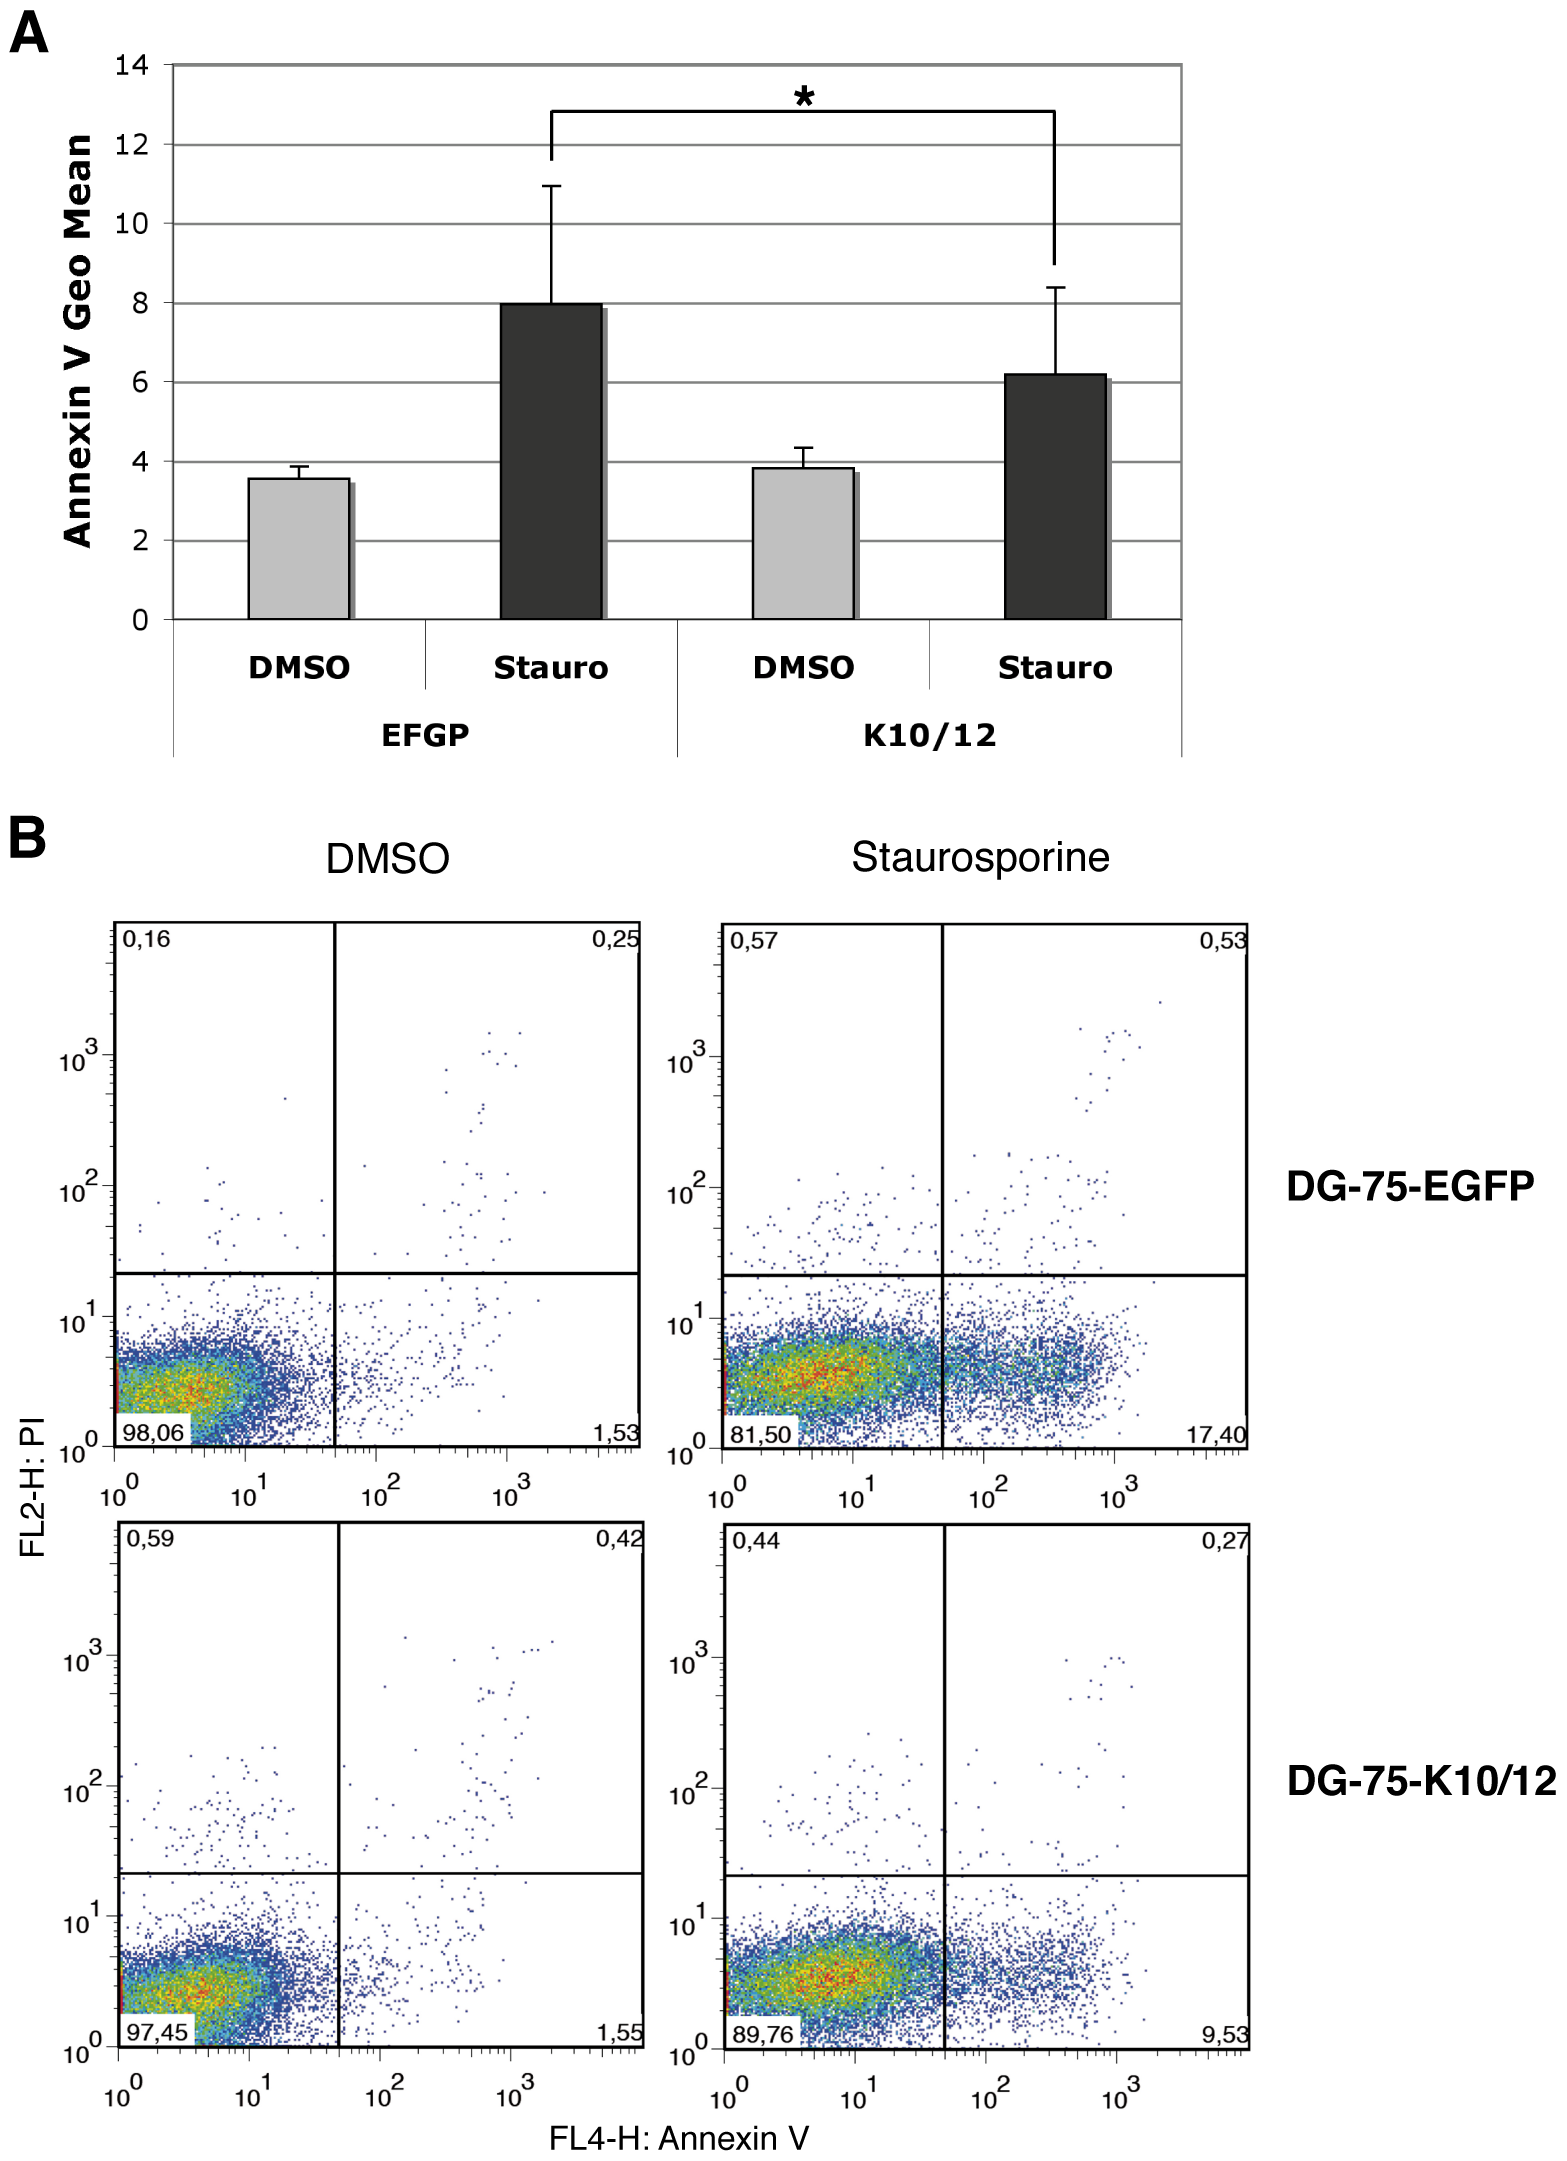 DG-75 cells expressing KSHV miRNAs are less sensitive to apoptosis.